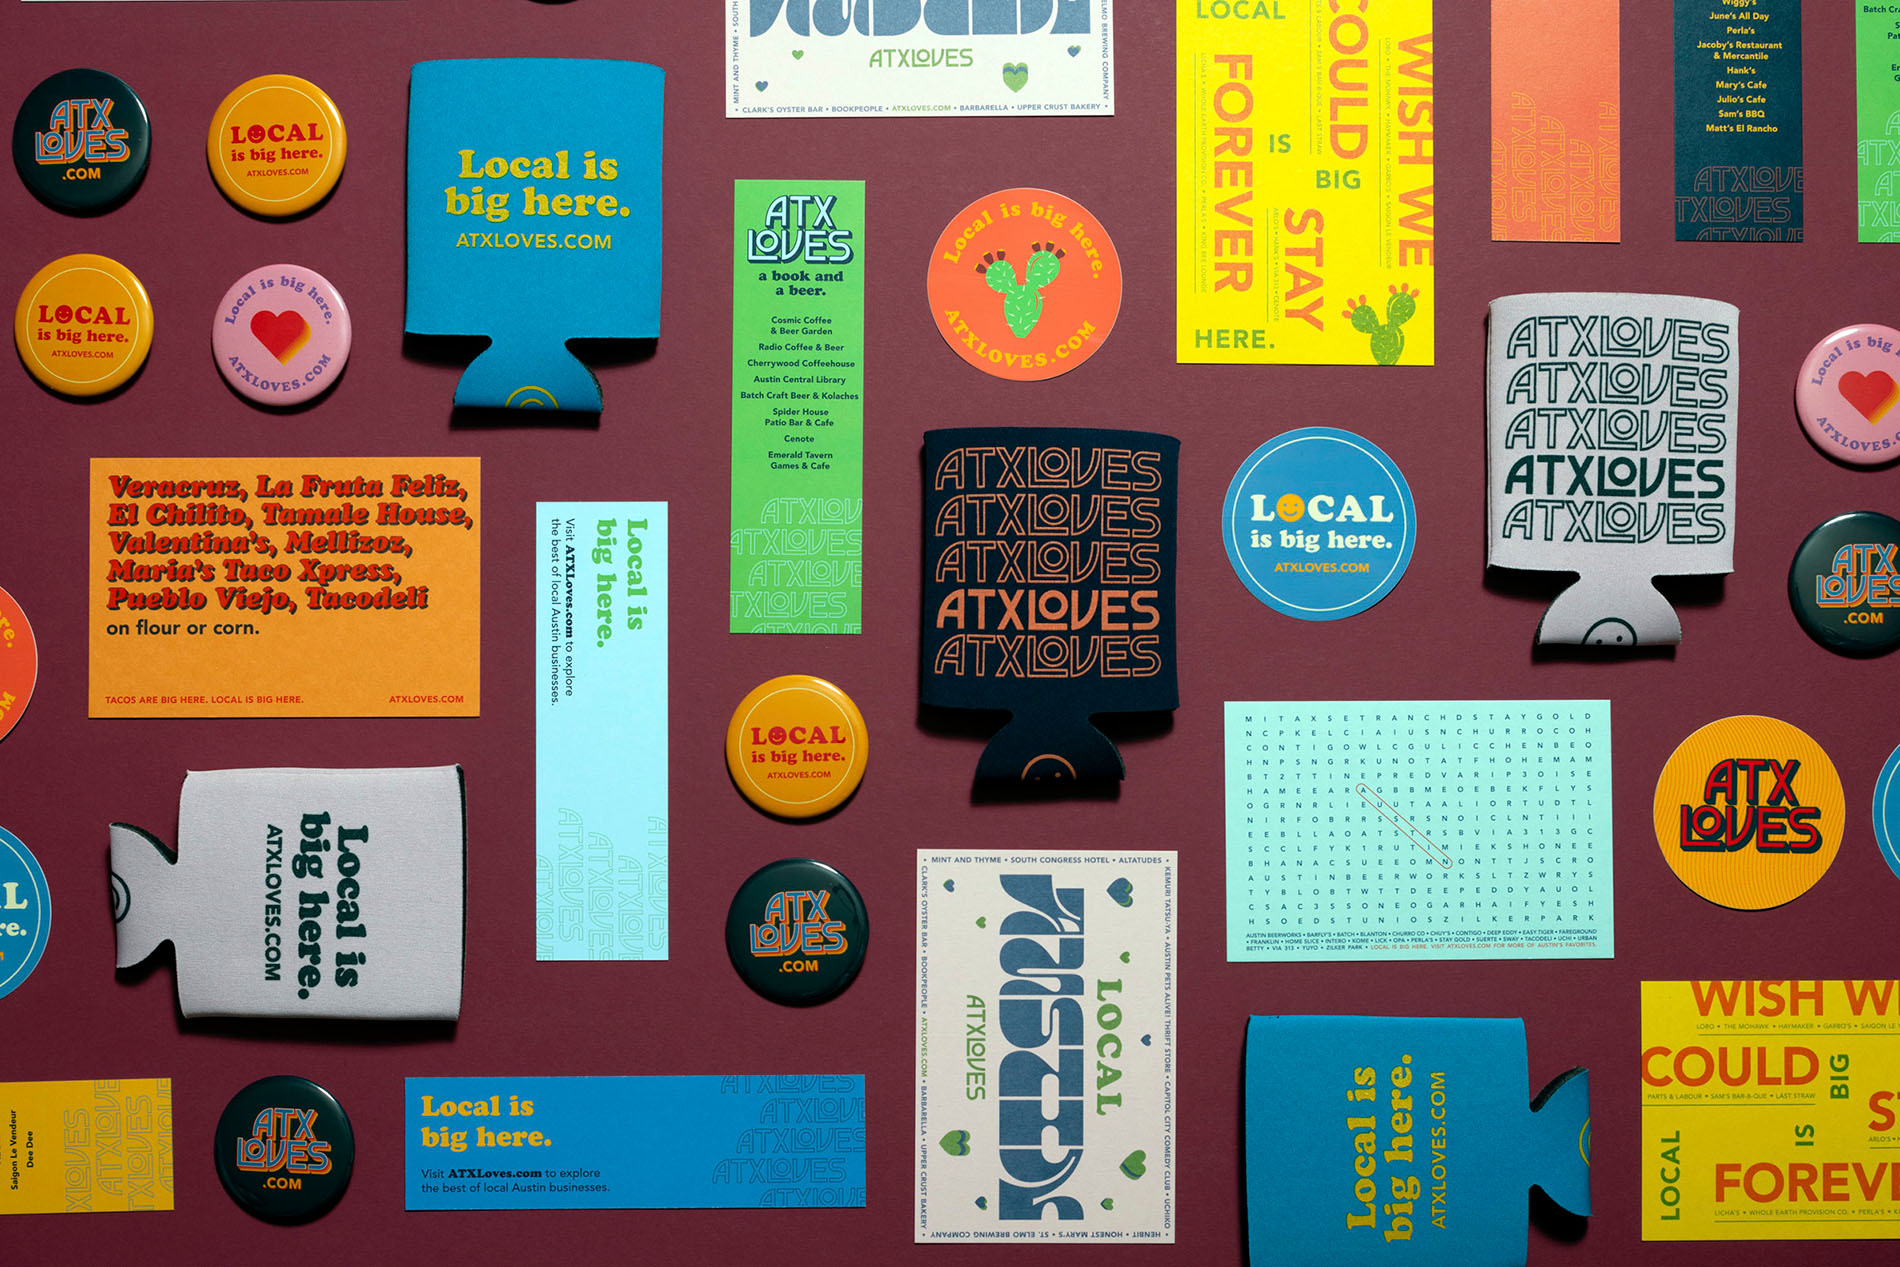 A collection of promotional ATXLoves collateral including stickers, buttons, and drink koozies.